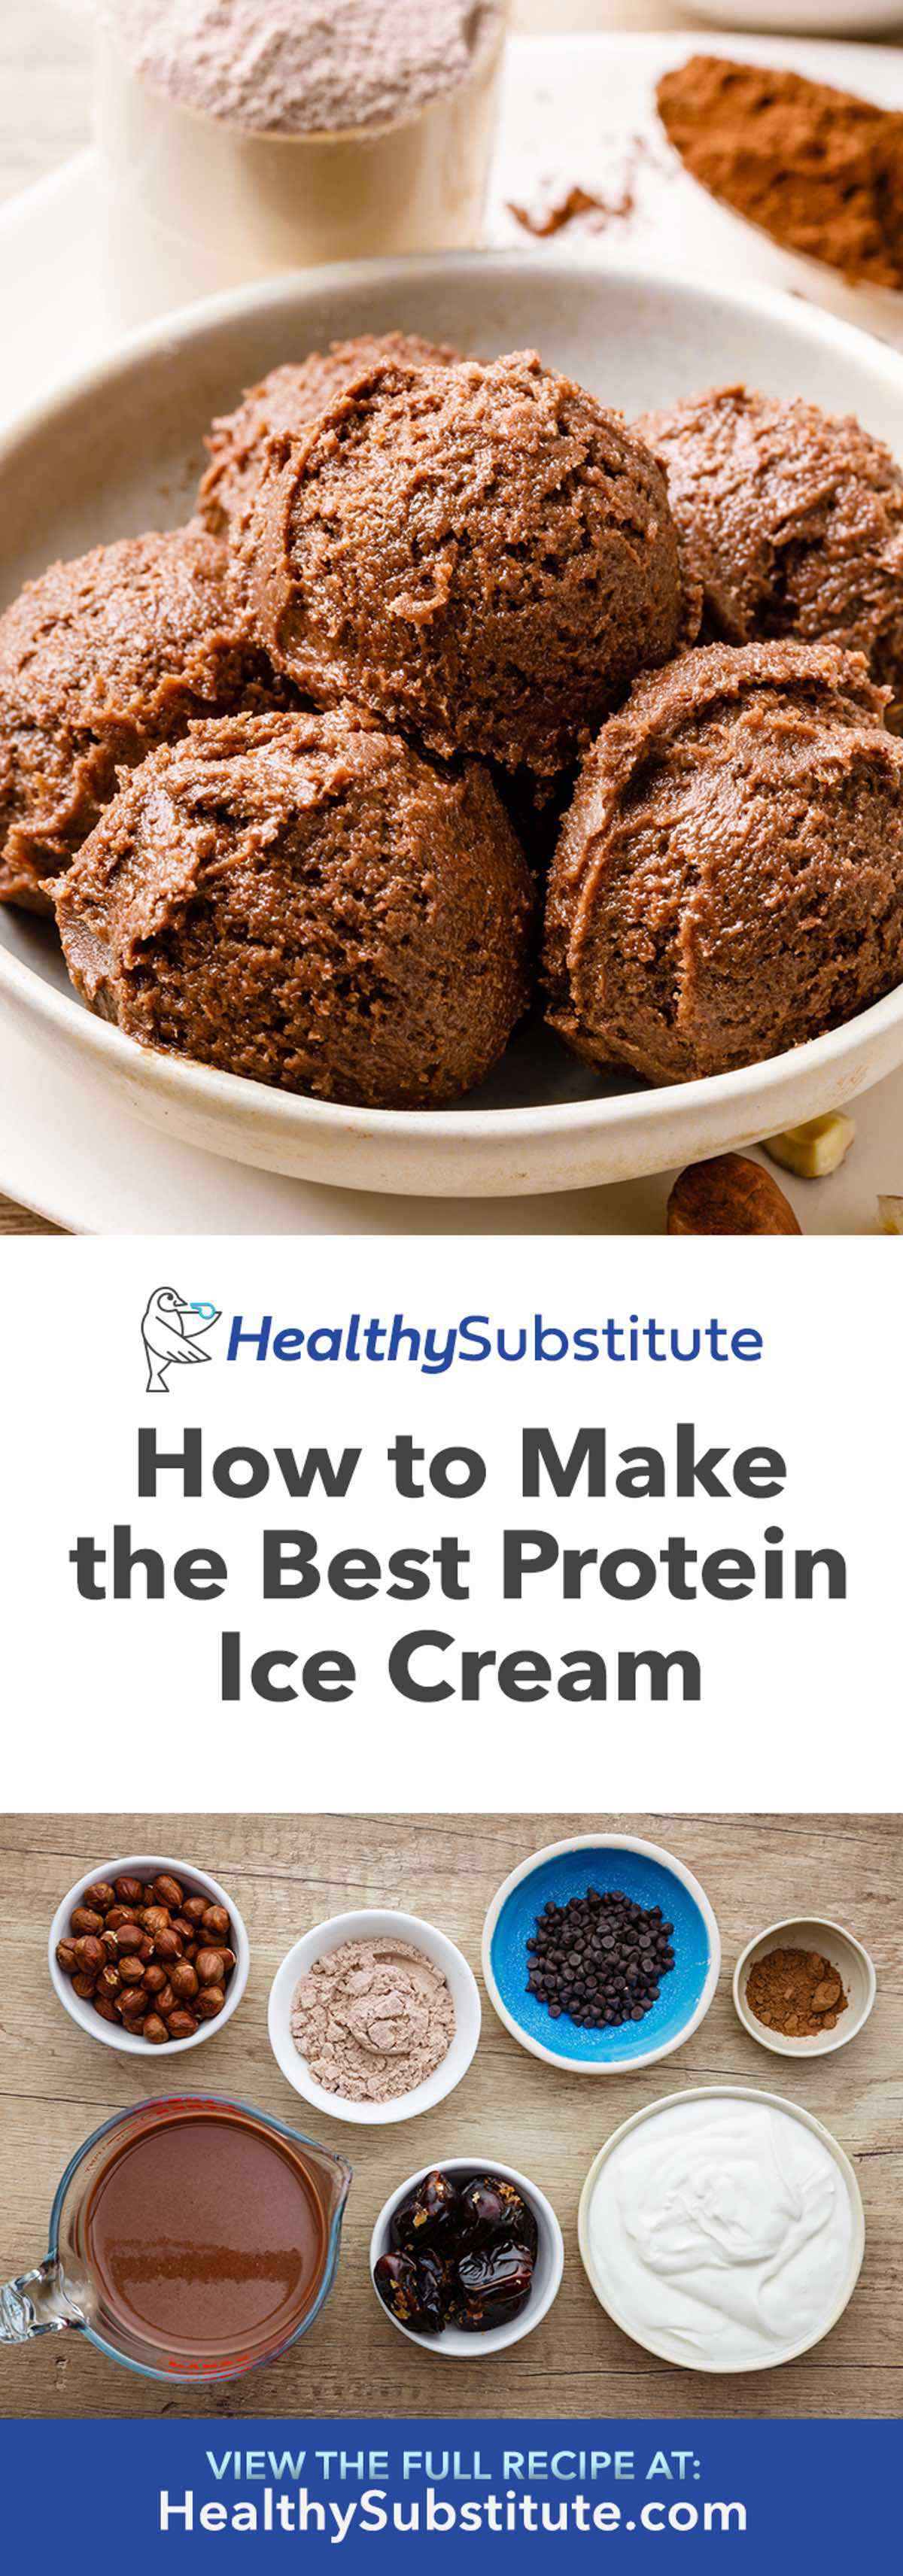 How to Make Protein Ice Cream